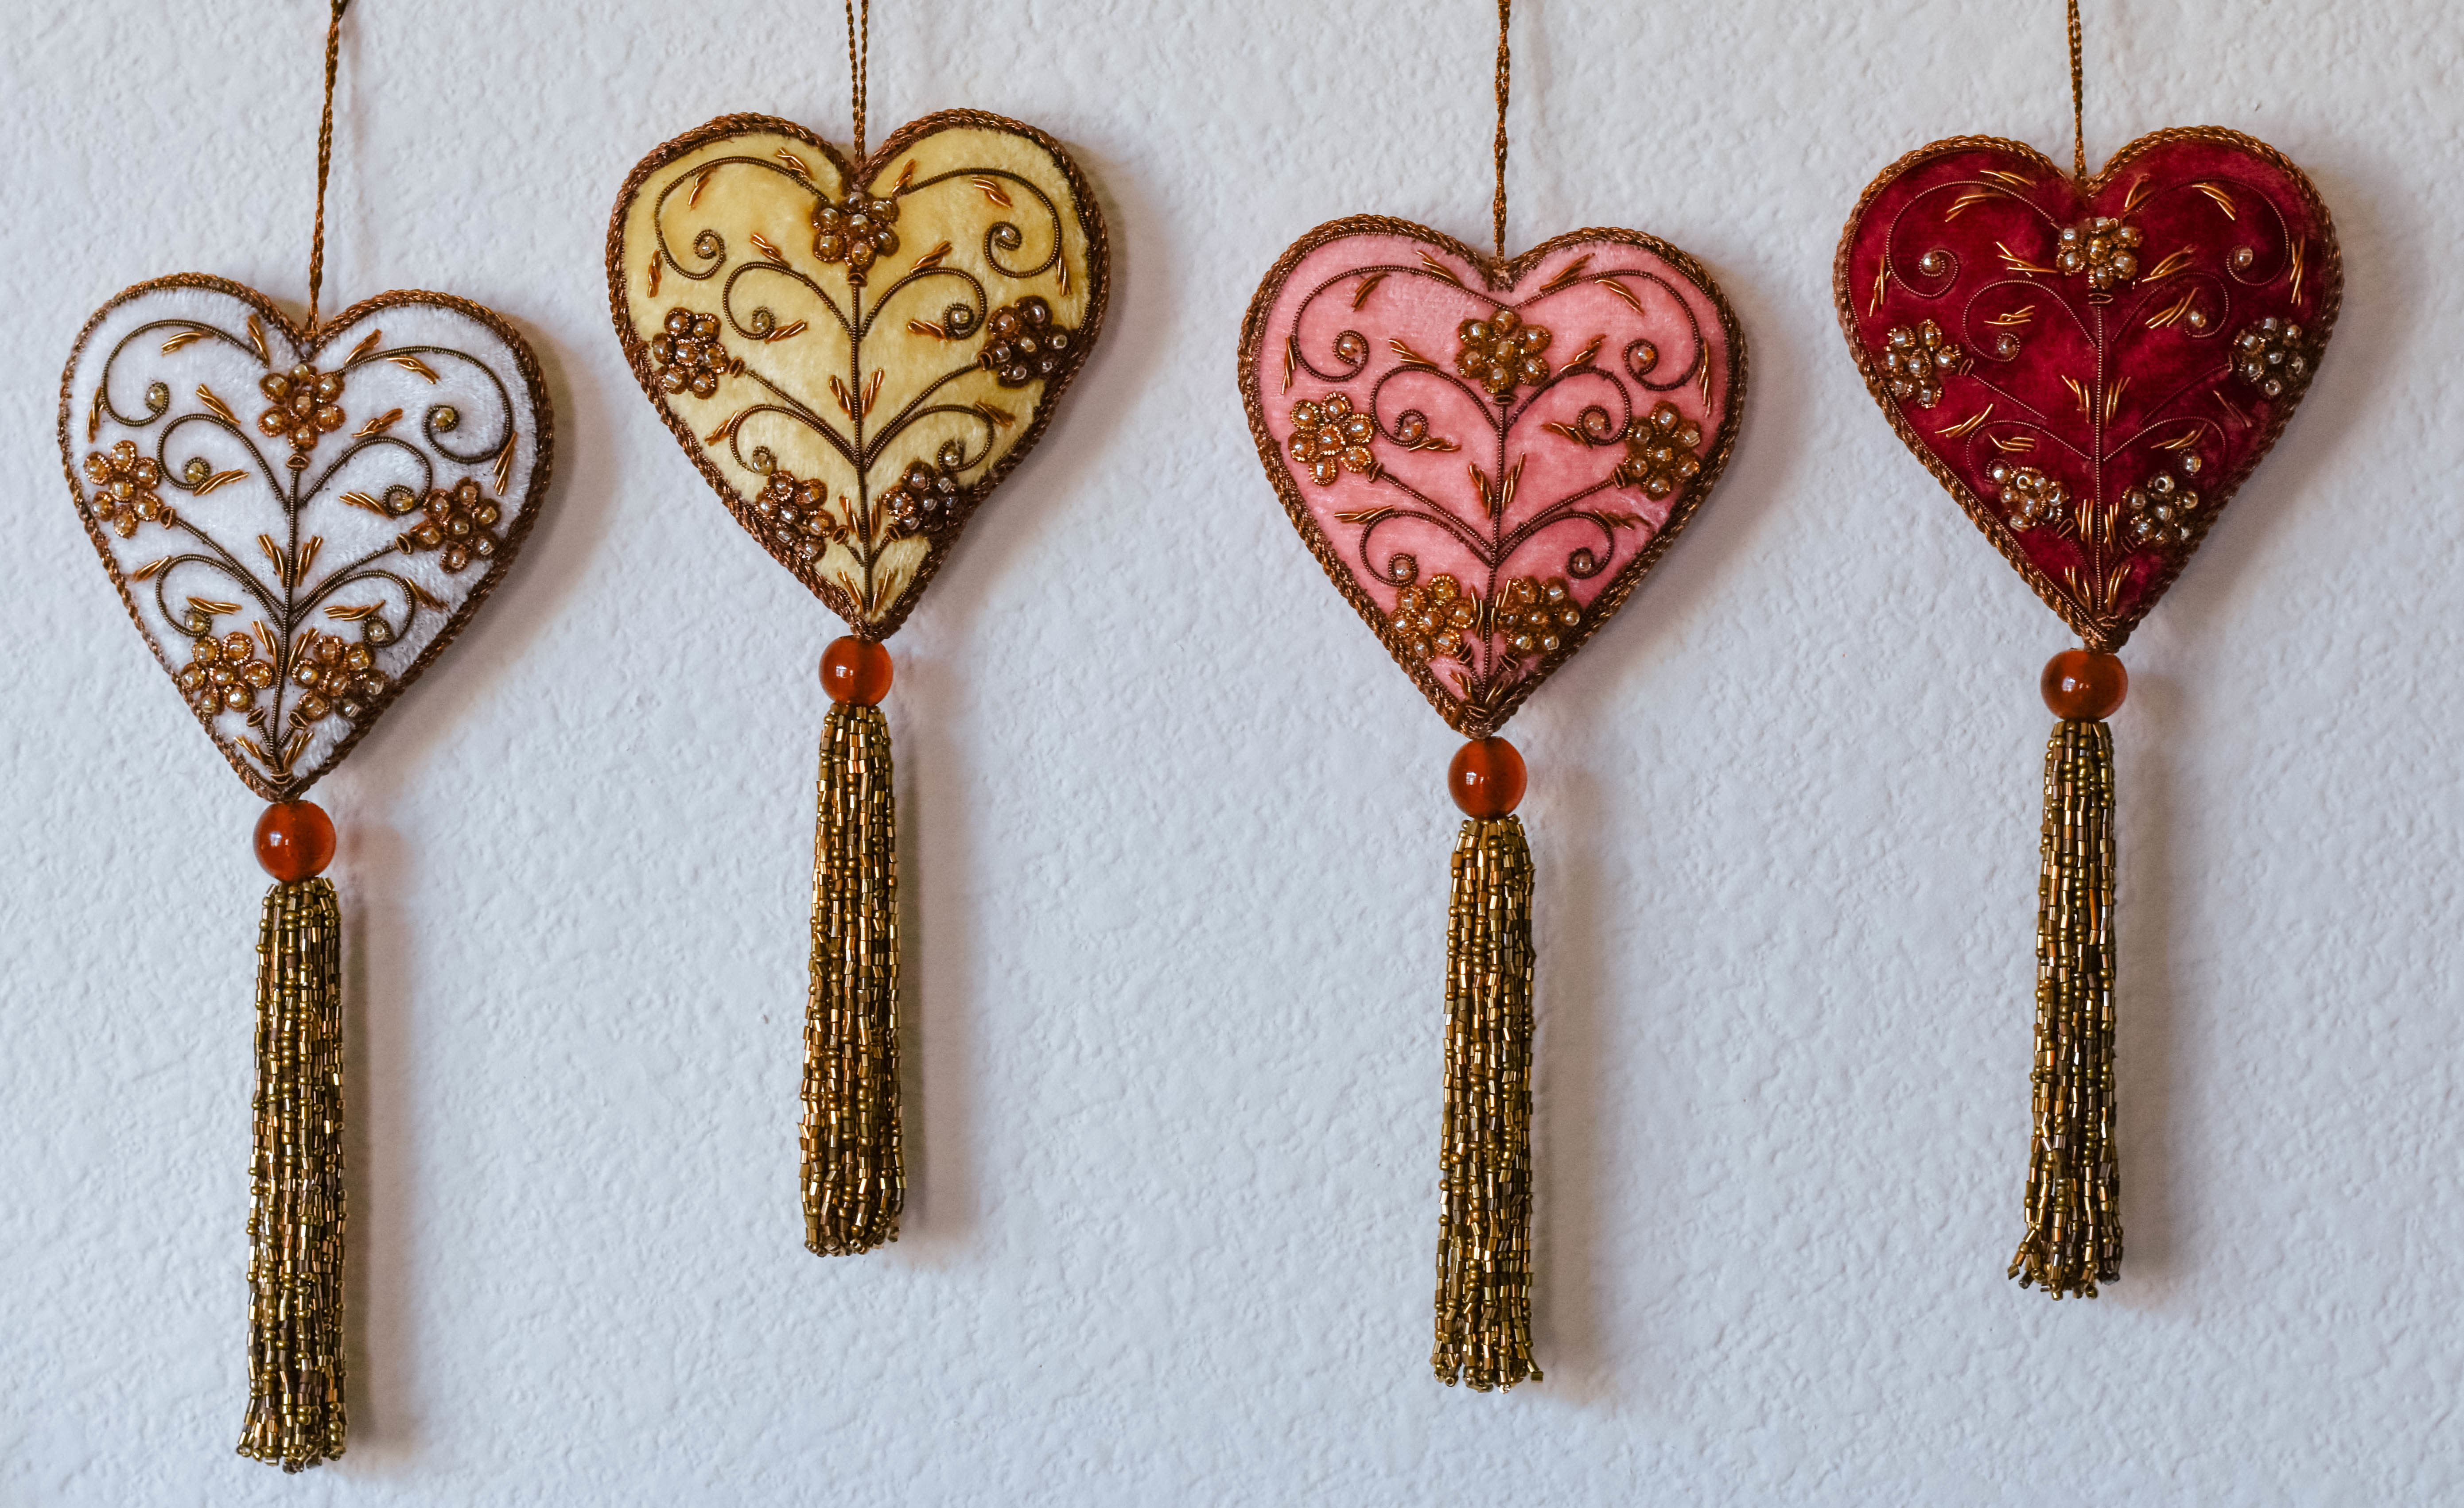 hand embroidered heart ornament xm1696a